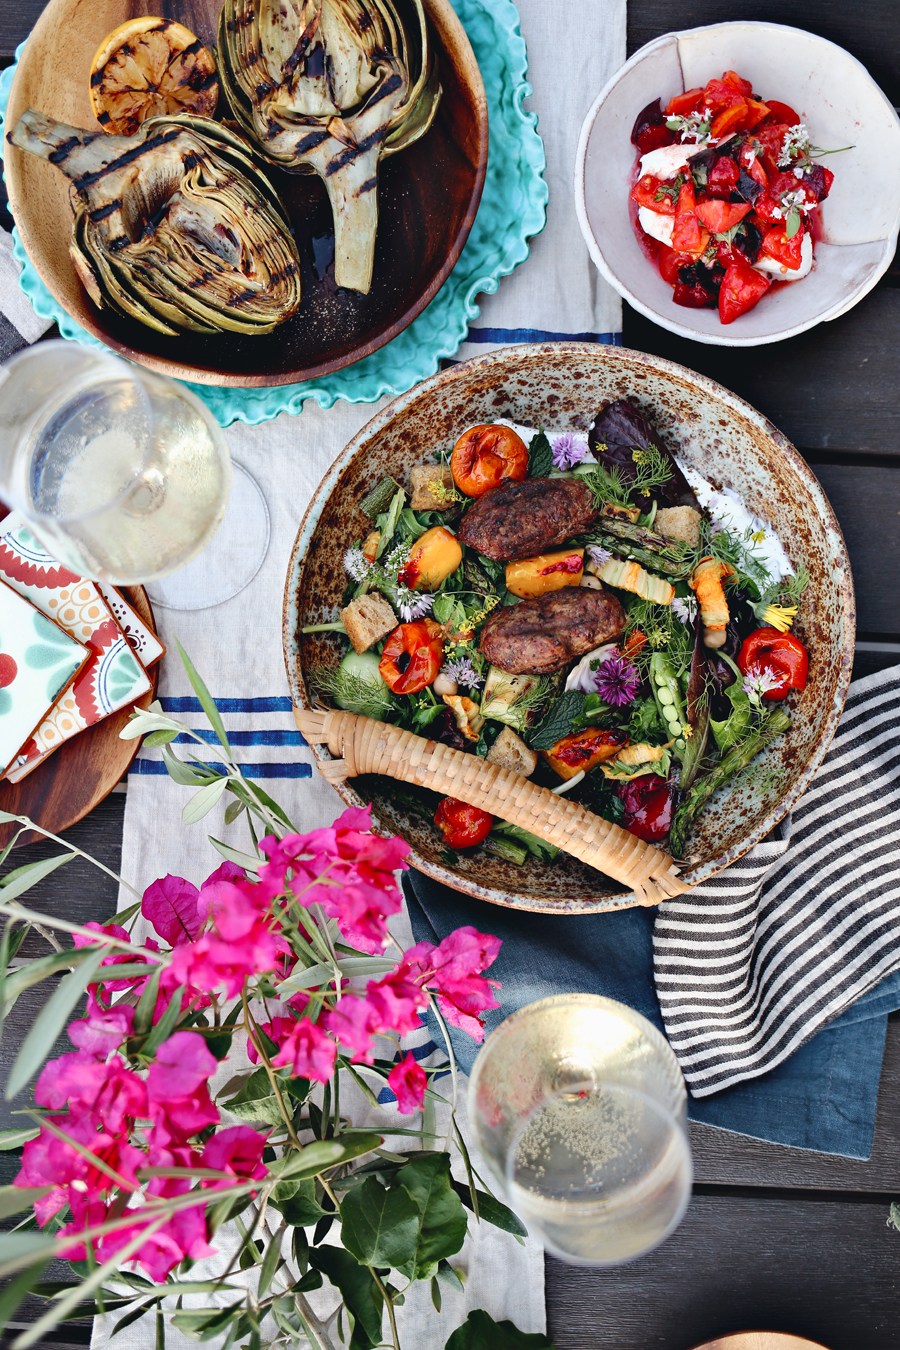 01_Grilled Fattoush Salad With Vinho Verde.jpg